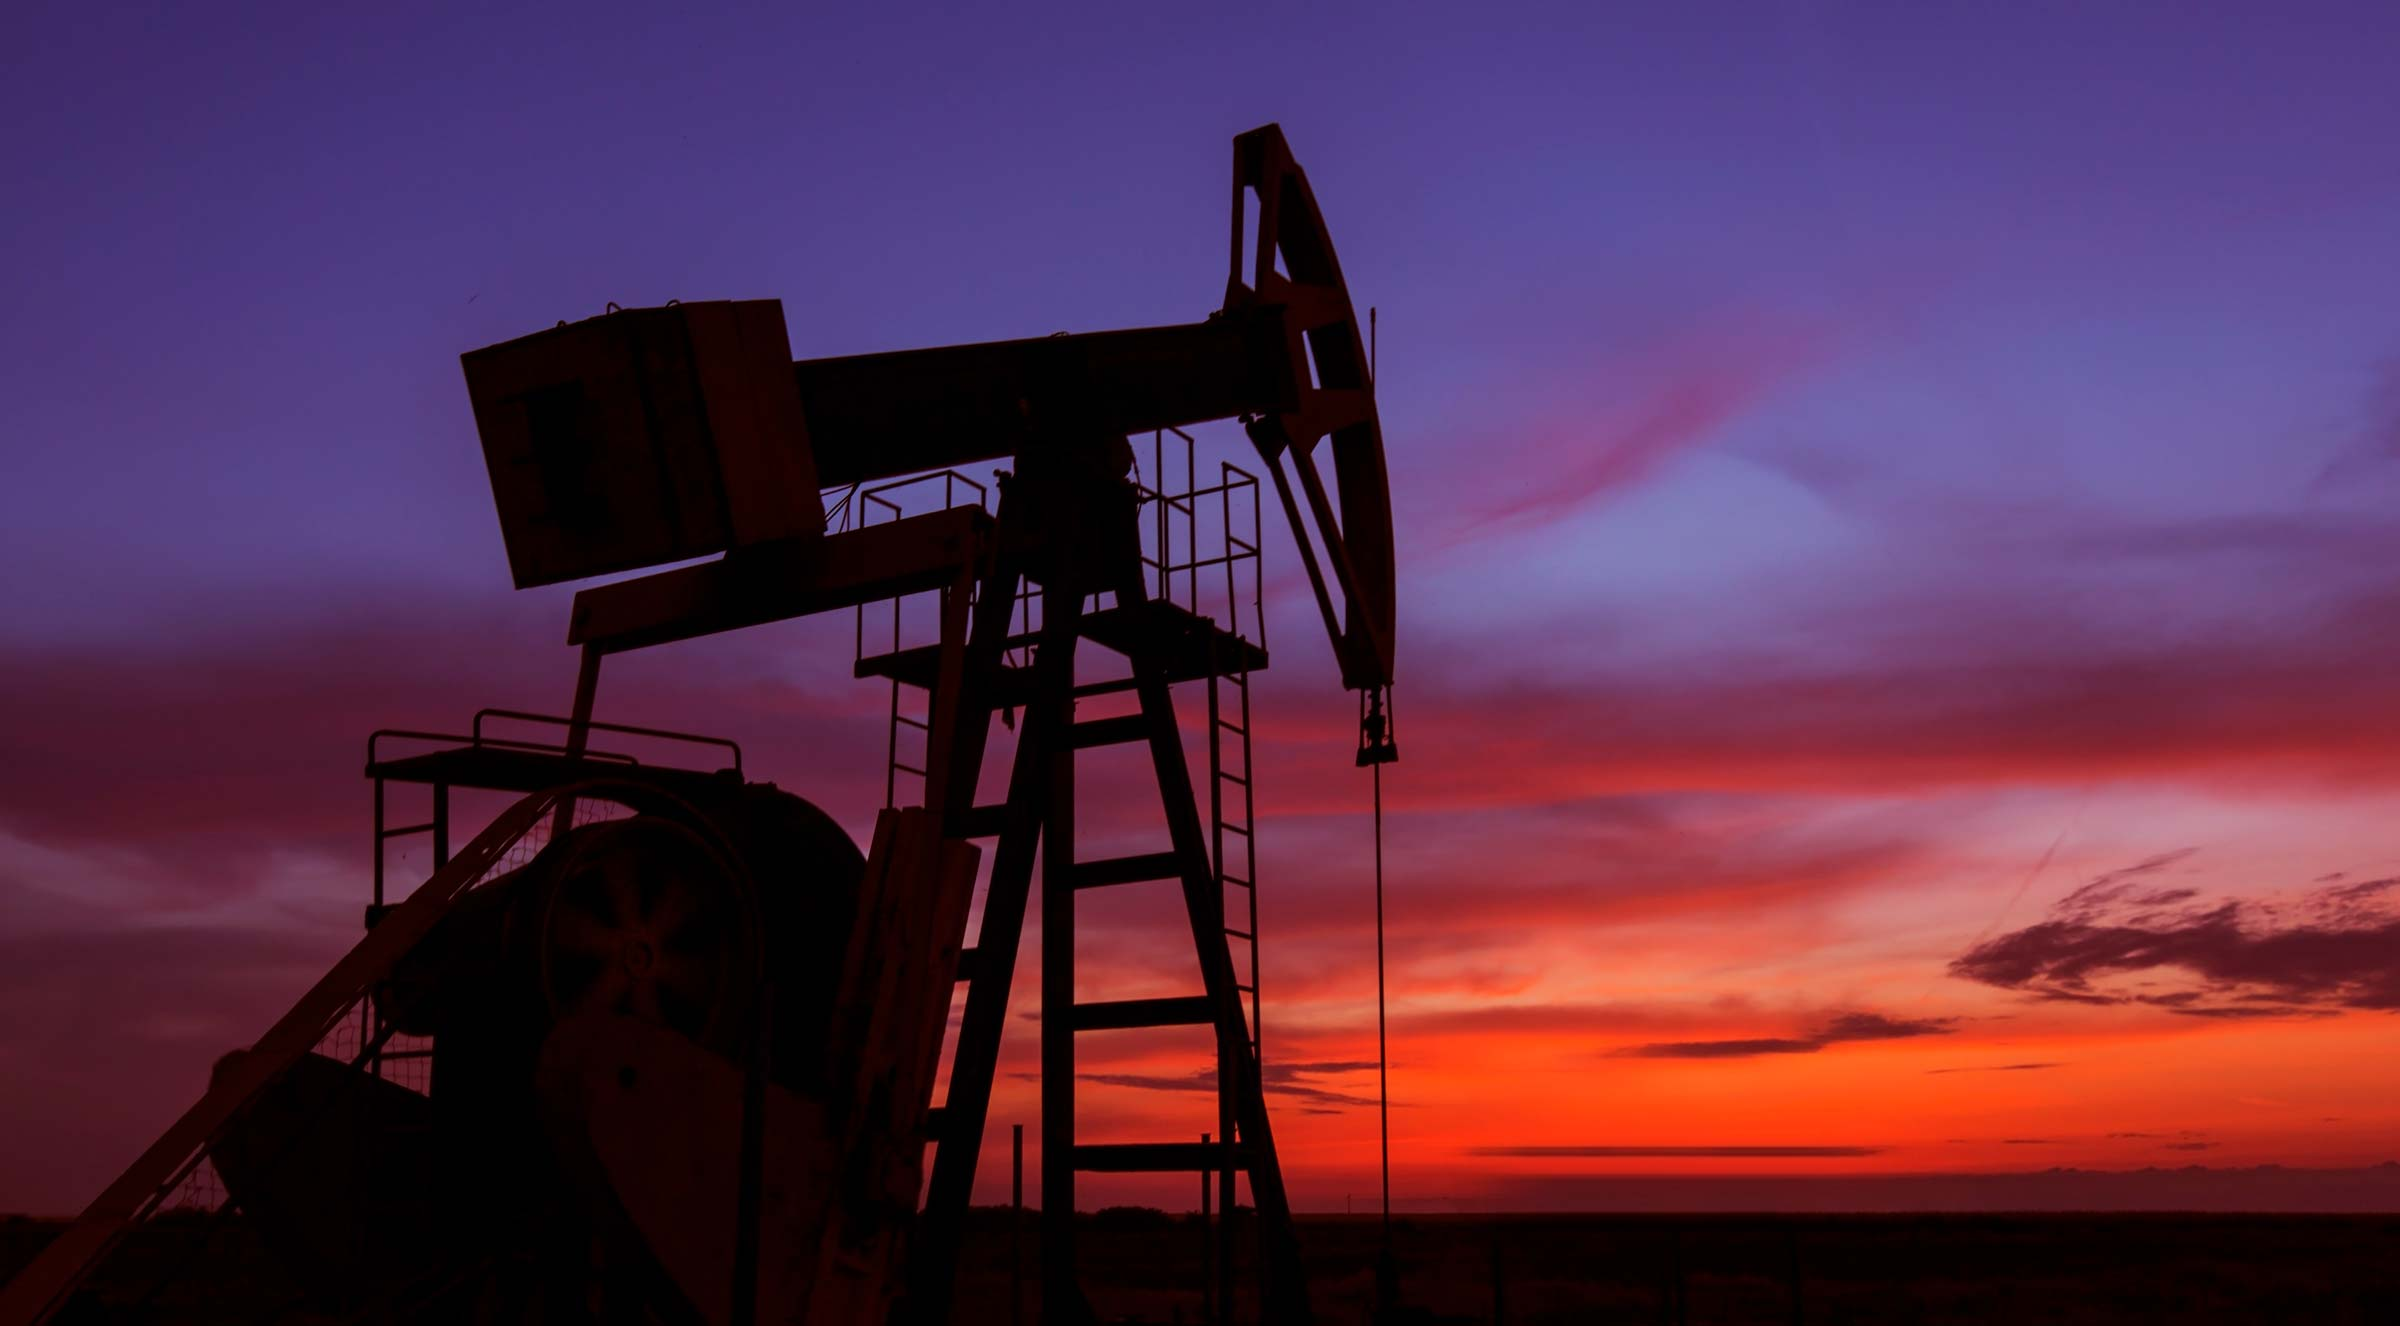 Access for Oil &Gas Advisors' Oil &Gas project and company valuation data.